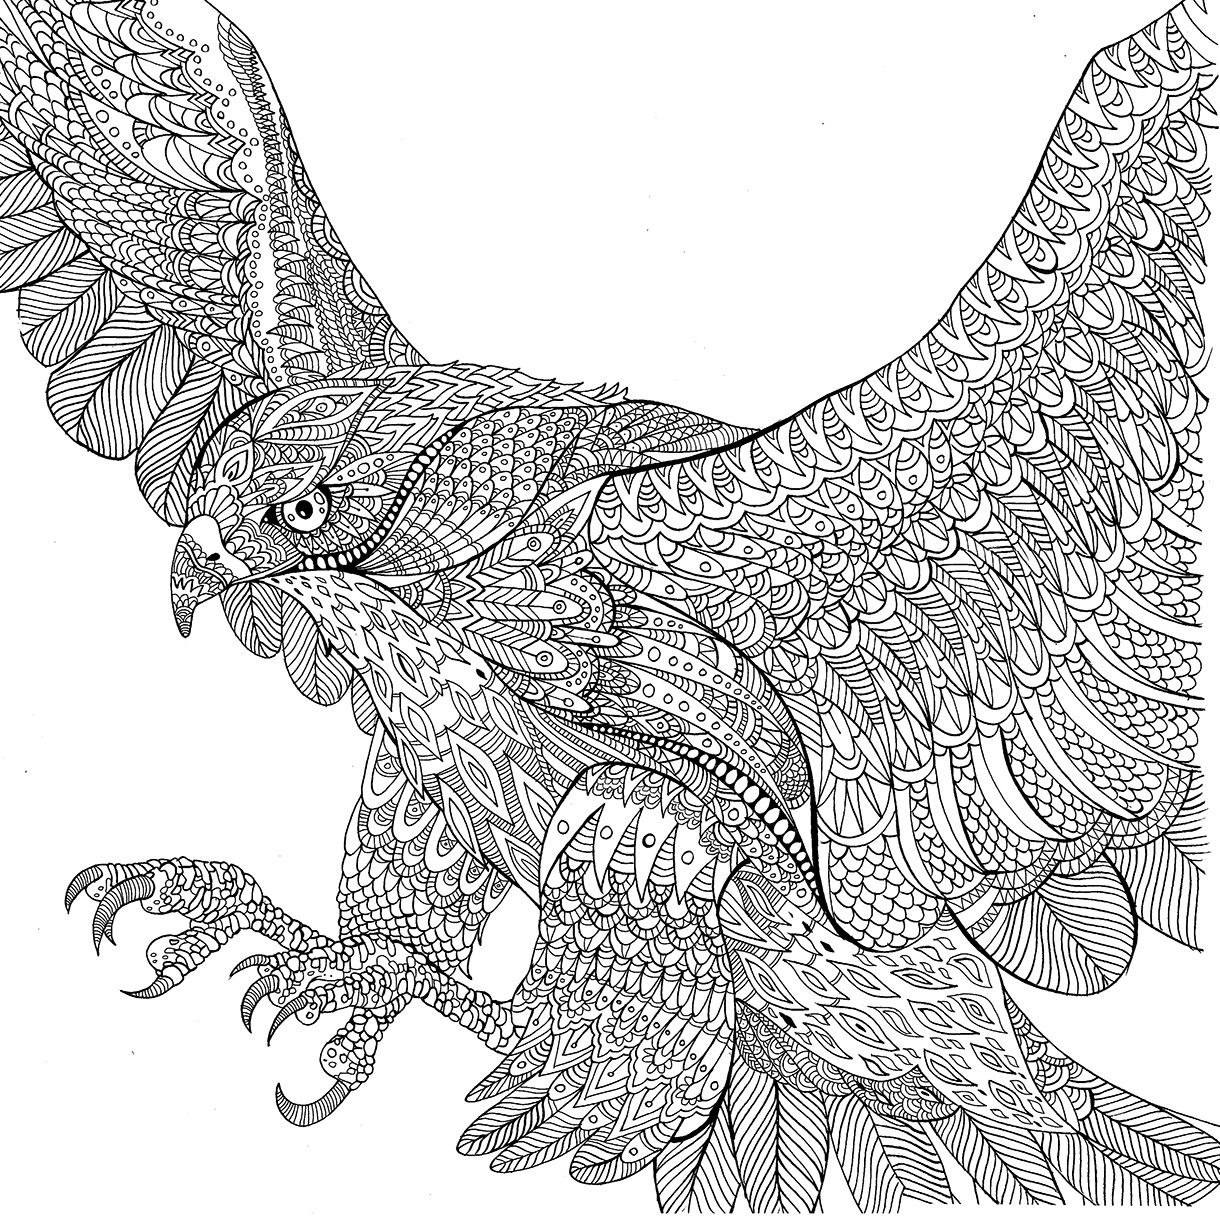 image result for the menagerie colouring book | millie